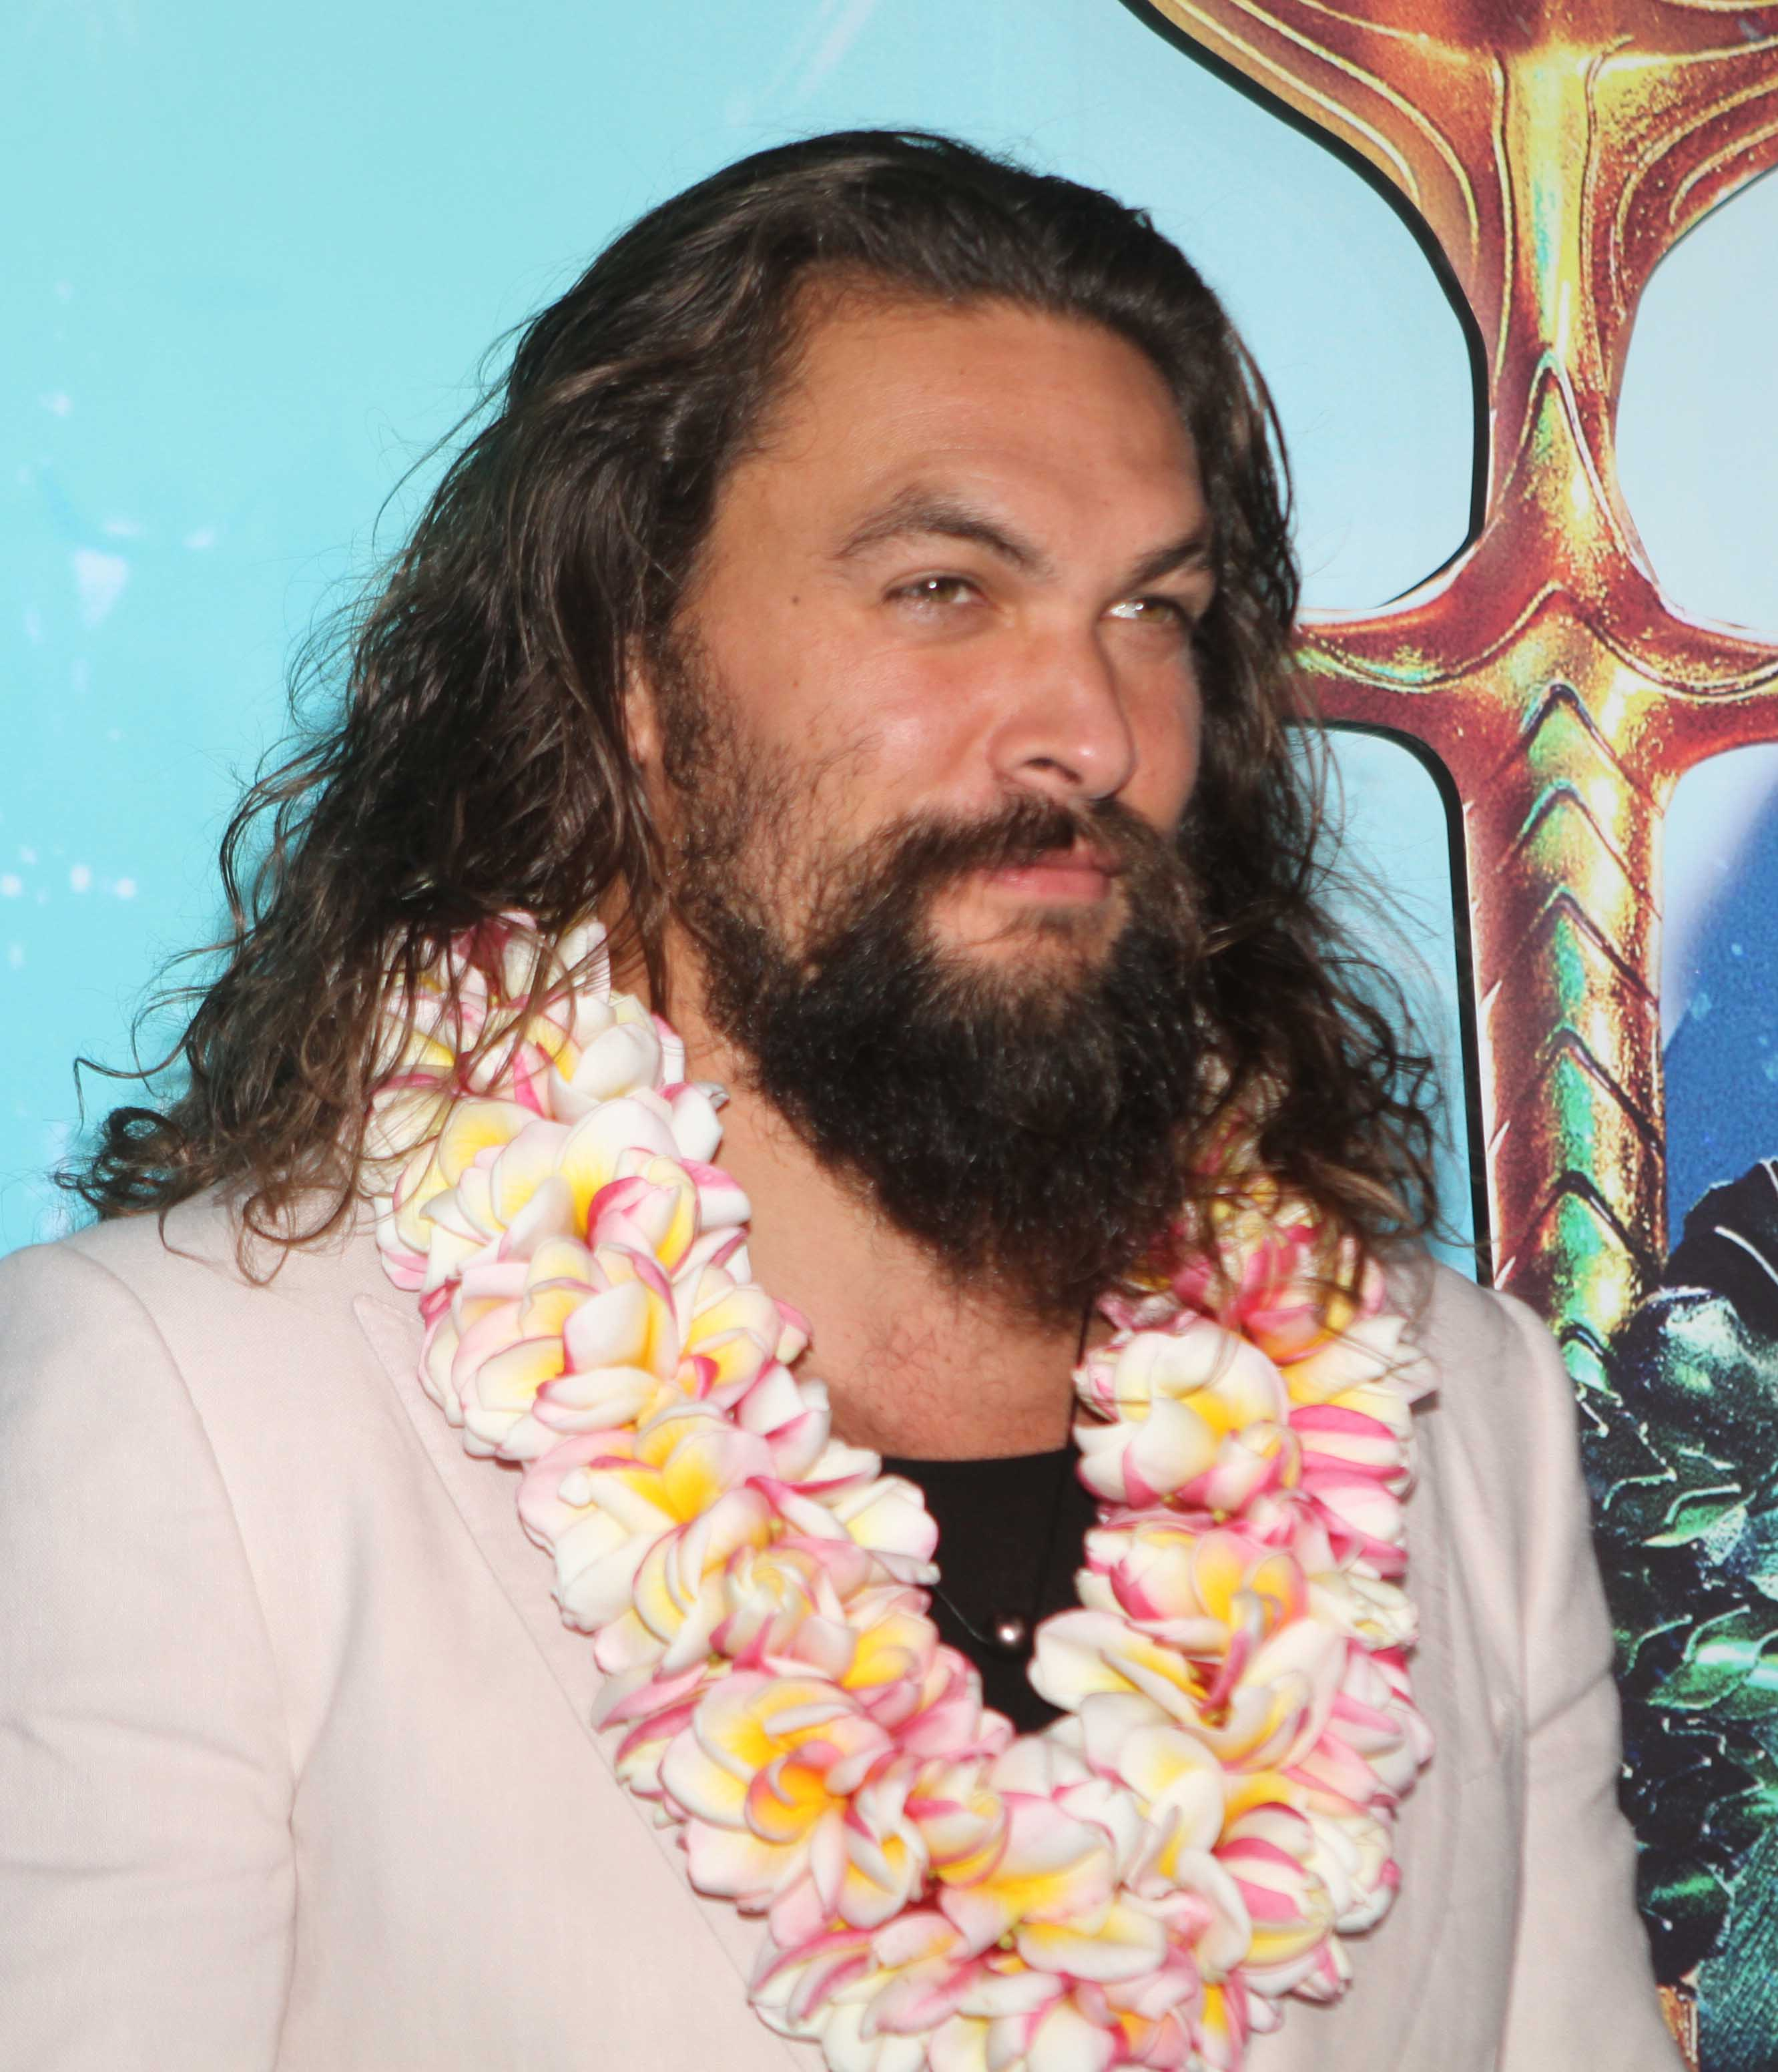 The 41-year old son of father  Joseph Momoa and mother Coni Momoa Jason Momoa in 2020 photo. Jason Momoa earned a  million dollar salary - leaving the net worth at 4 million in 2020